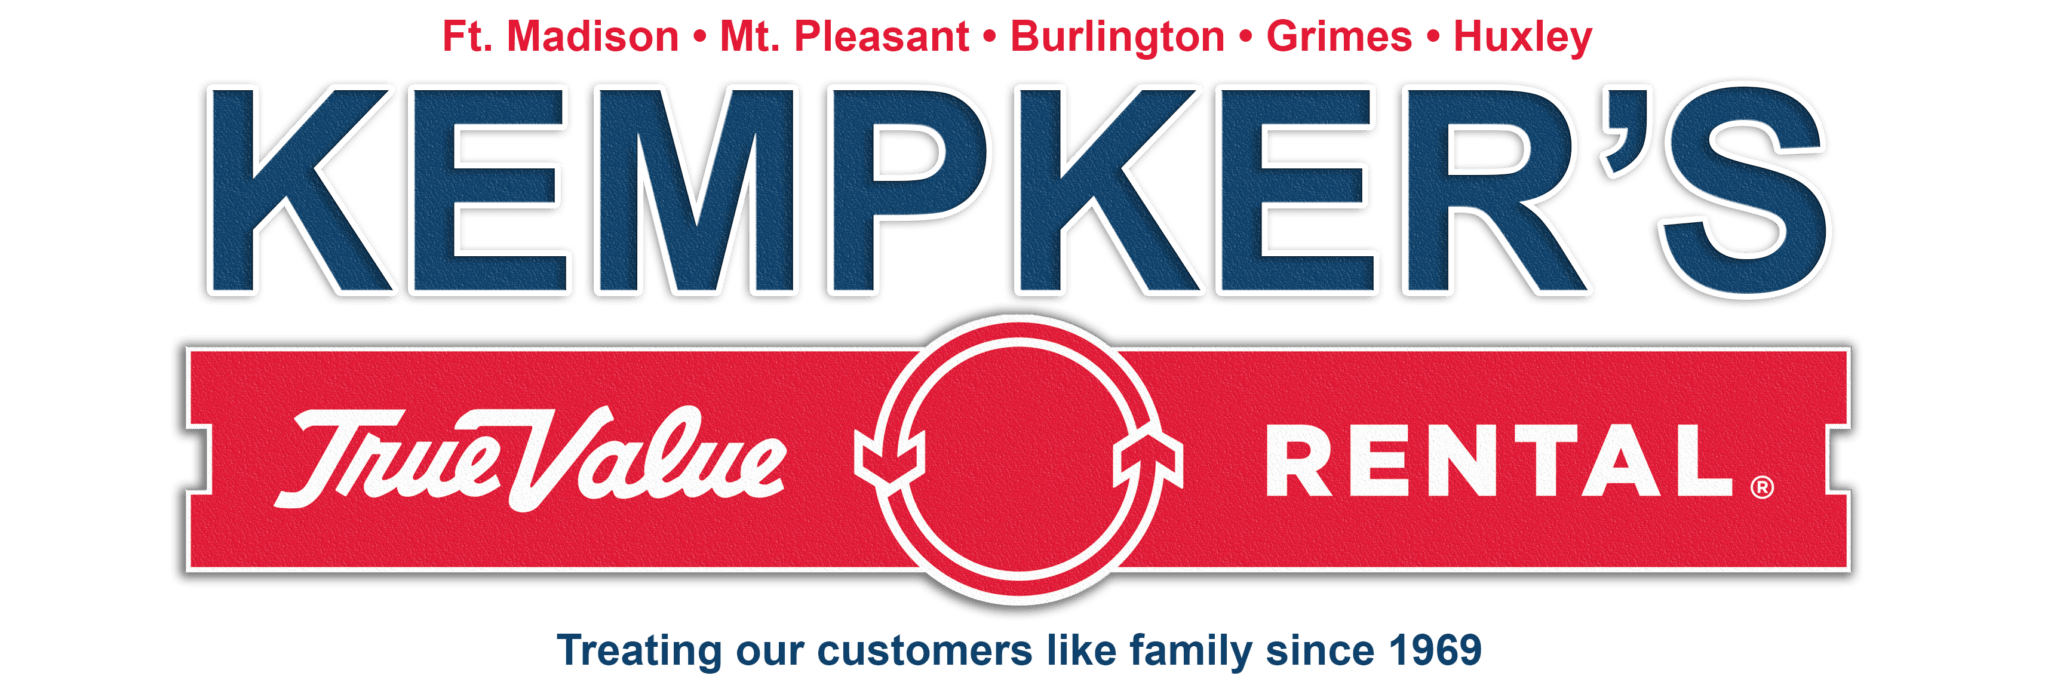 Kempker's True Value & Rental, Inc.